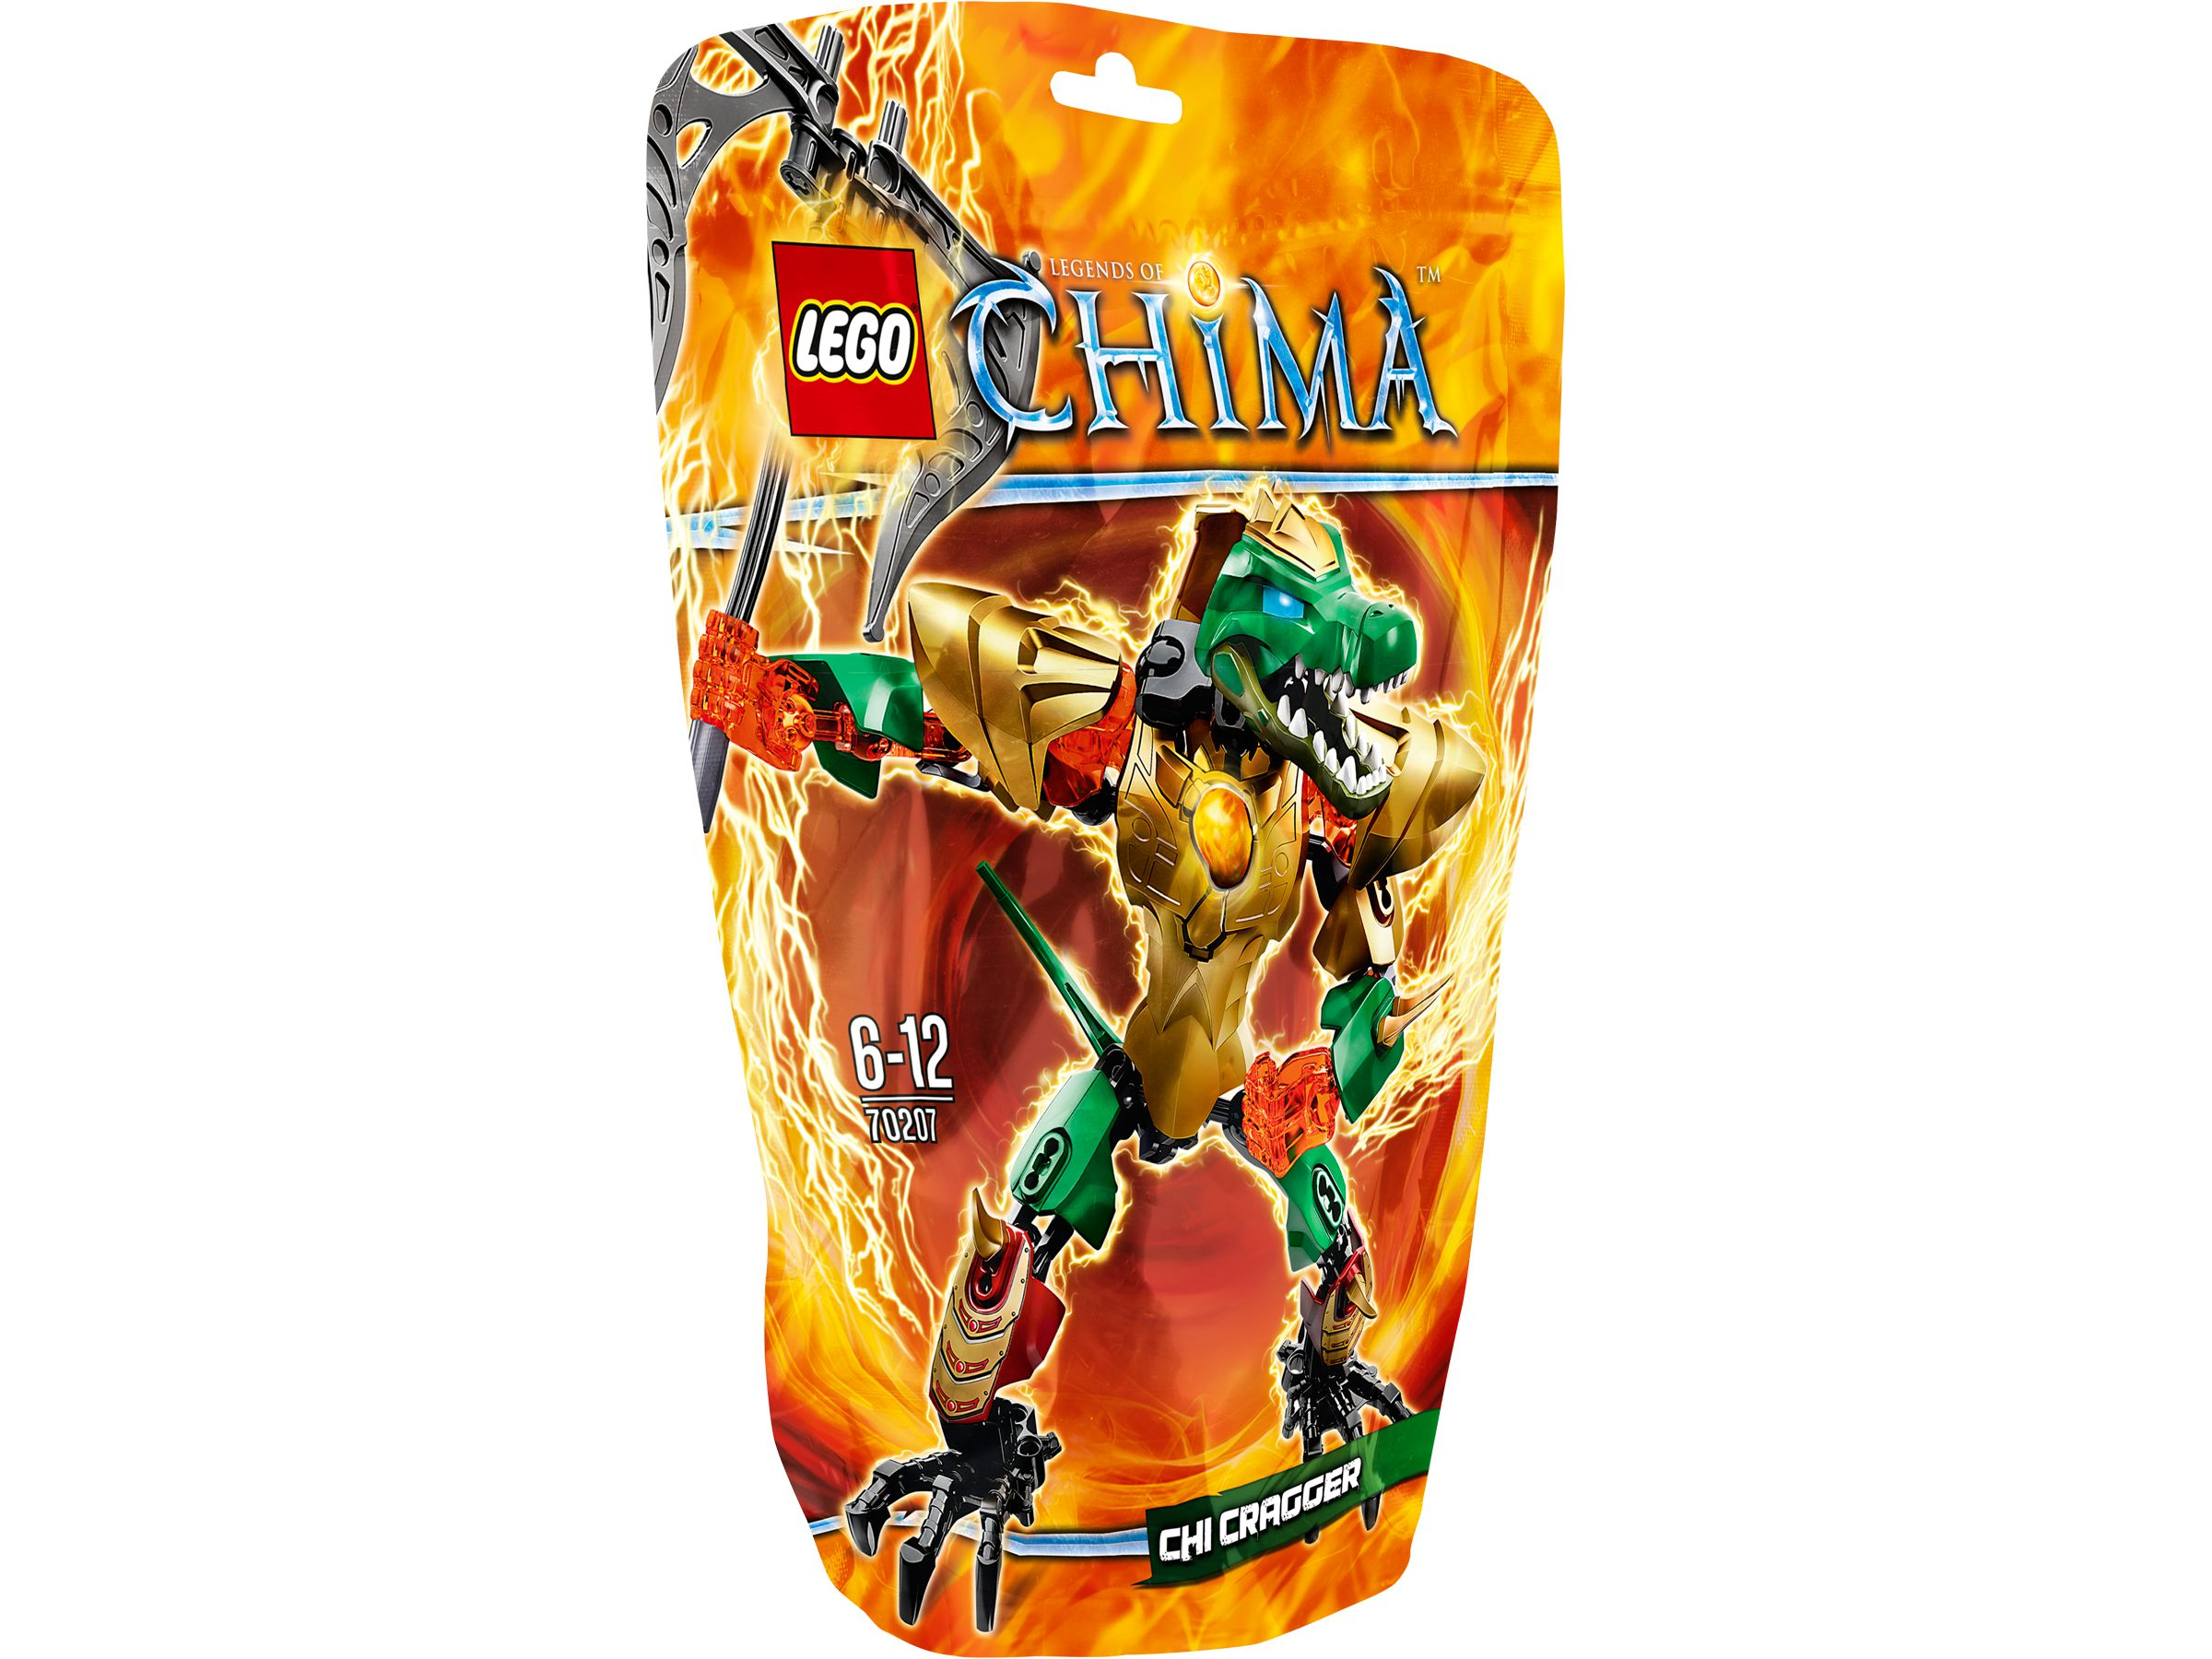 LEGO Legends Of Chima 70207 CHI Cragger LEGO_70207_alt1.jpg